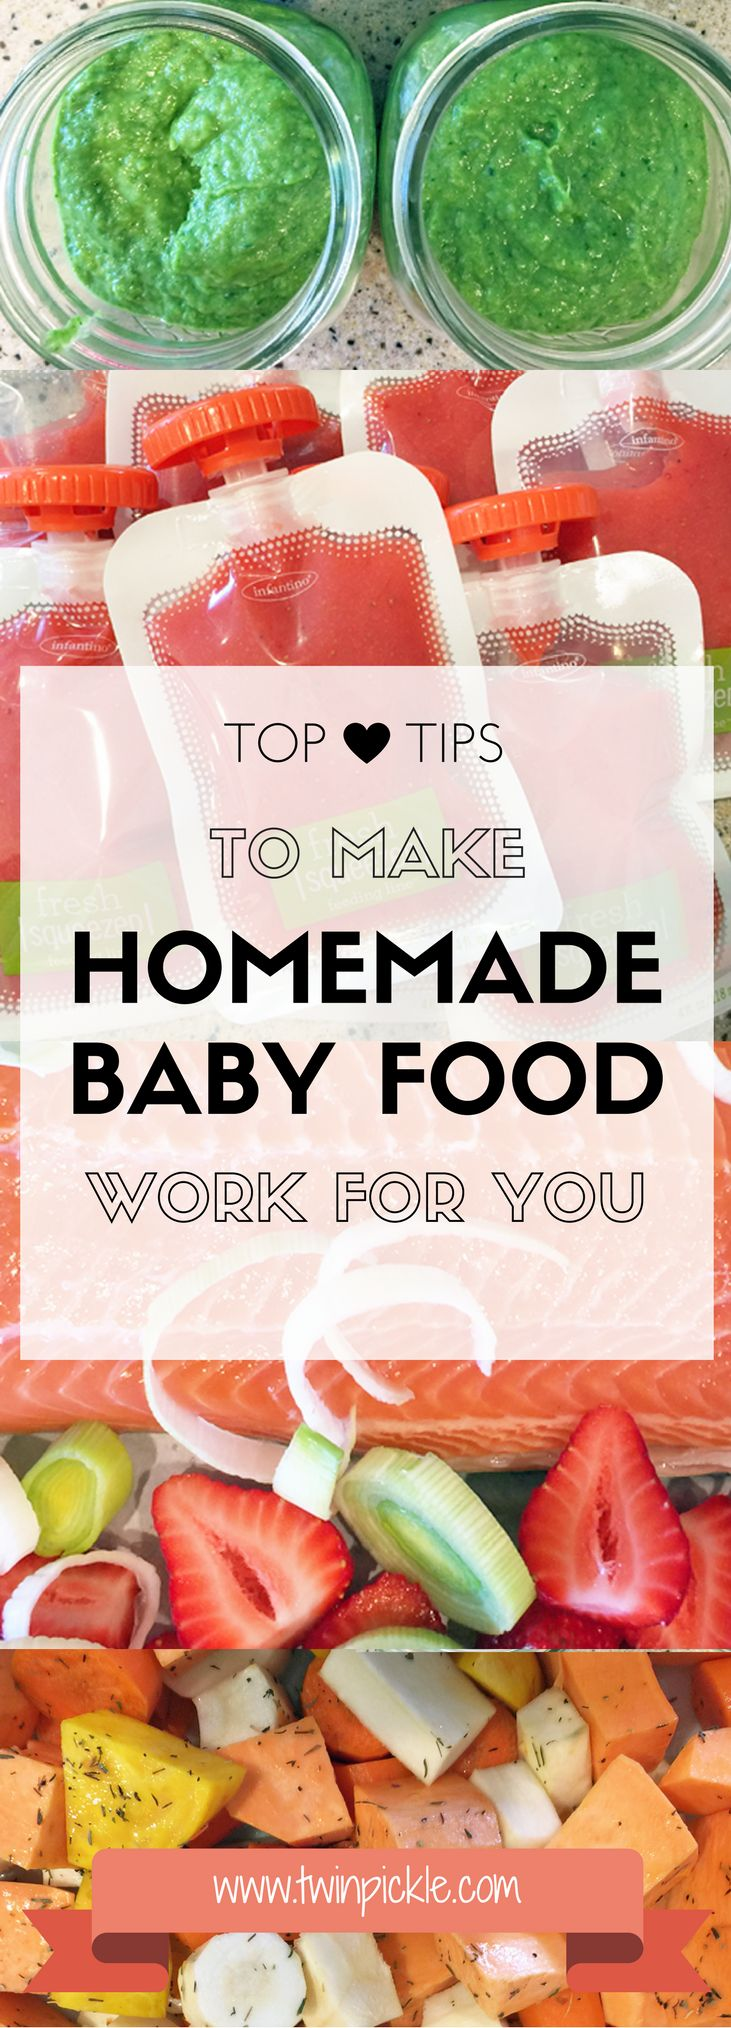 We all dream of giving Baby the perfect diet, but sometimes it's hard to keep on top of it all. Tips to keep it simple, understand your limits and find what works FOR YOU! #parenting #babies #babyfood #homemade #puree #healthy